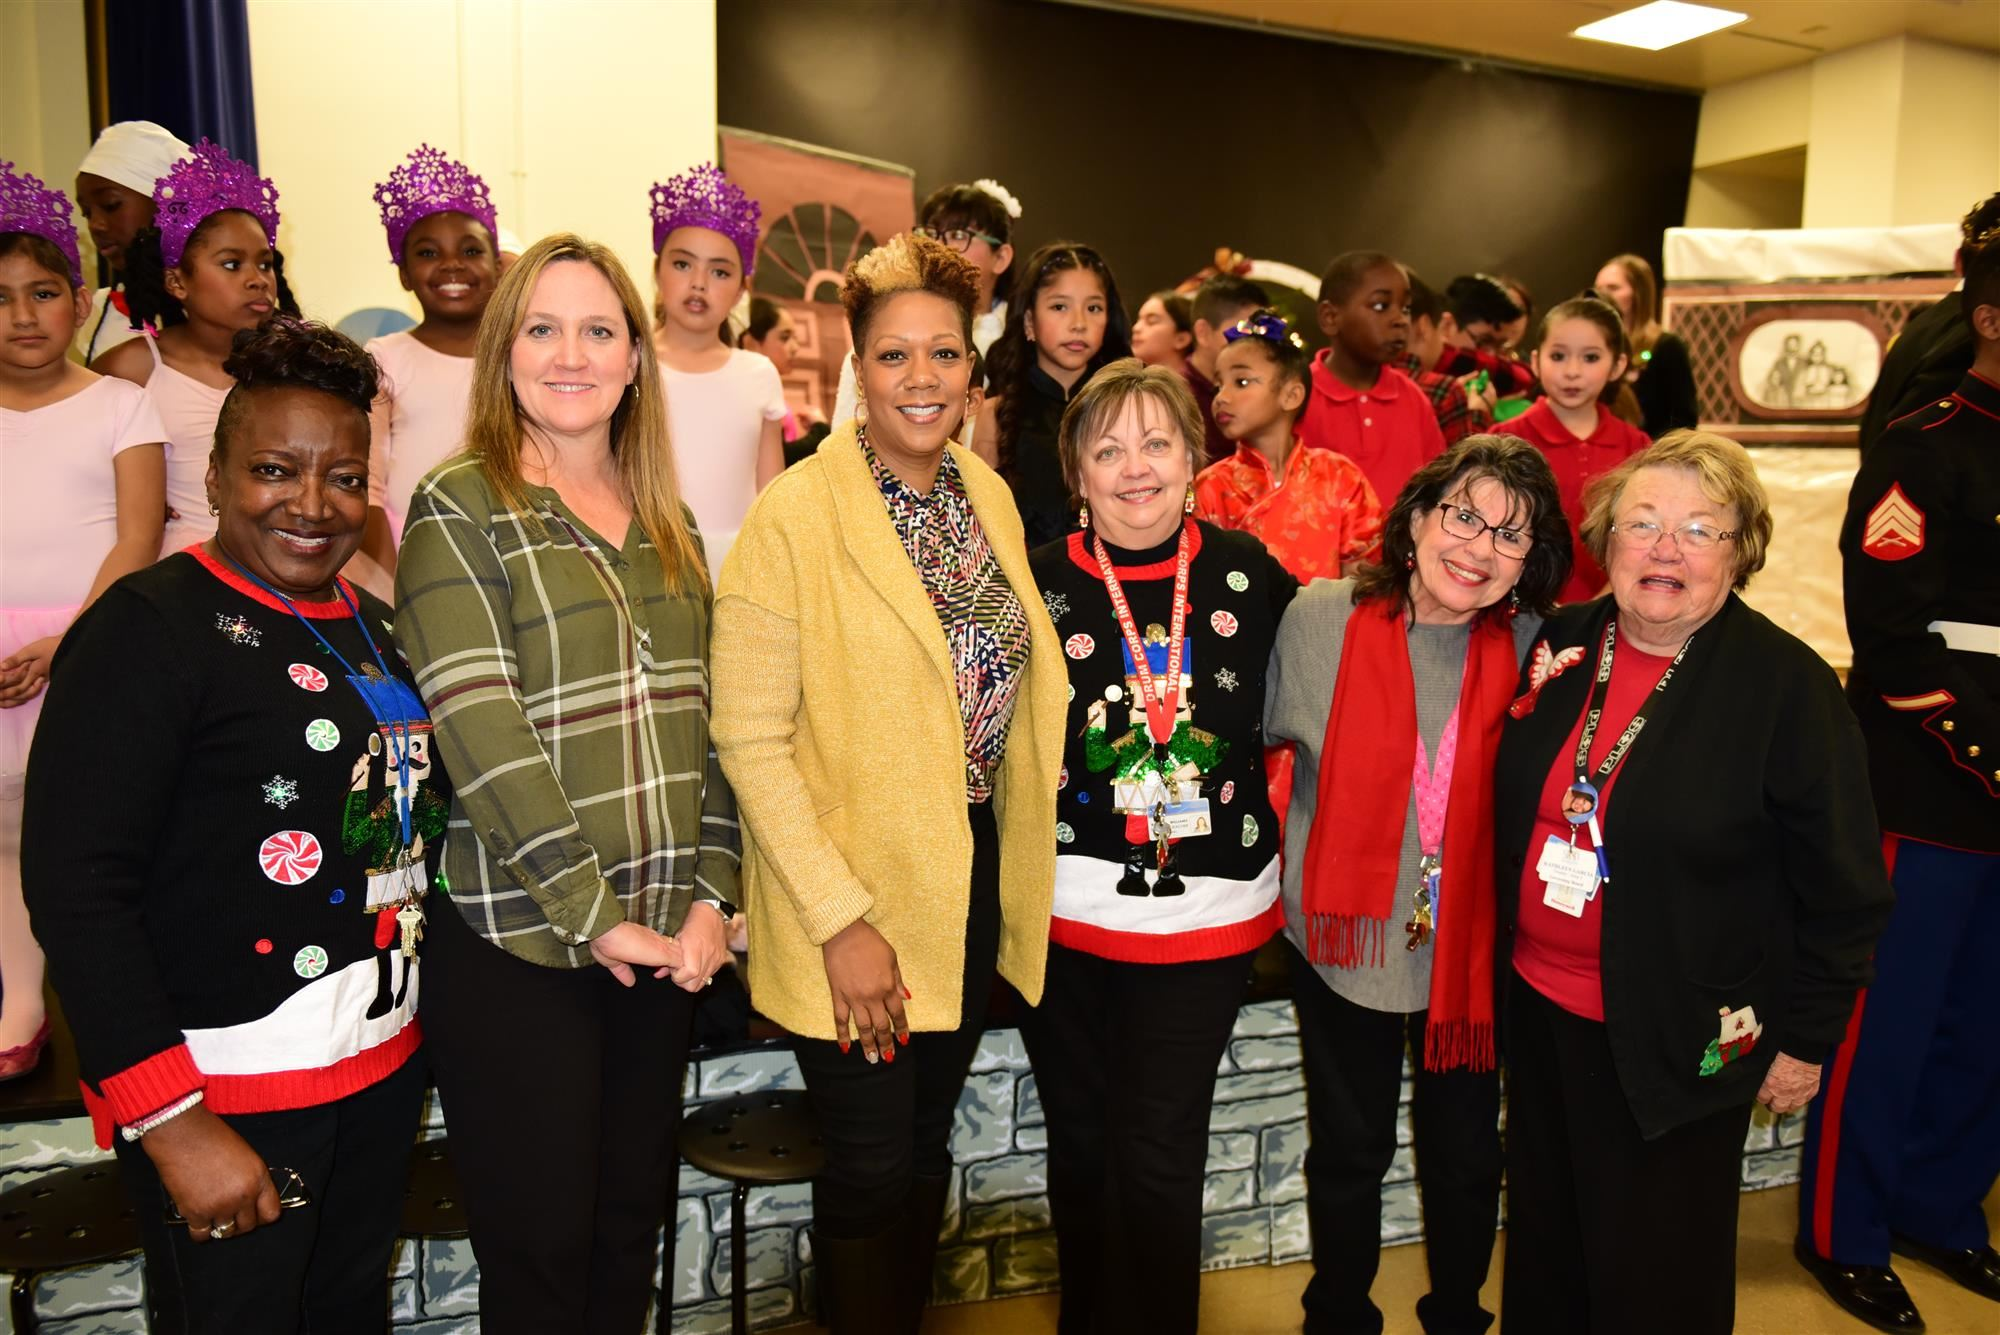 Board Vice President visits King Elementary during their Nutcracker performance